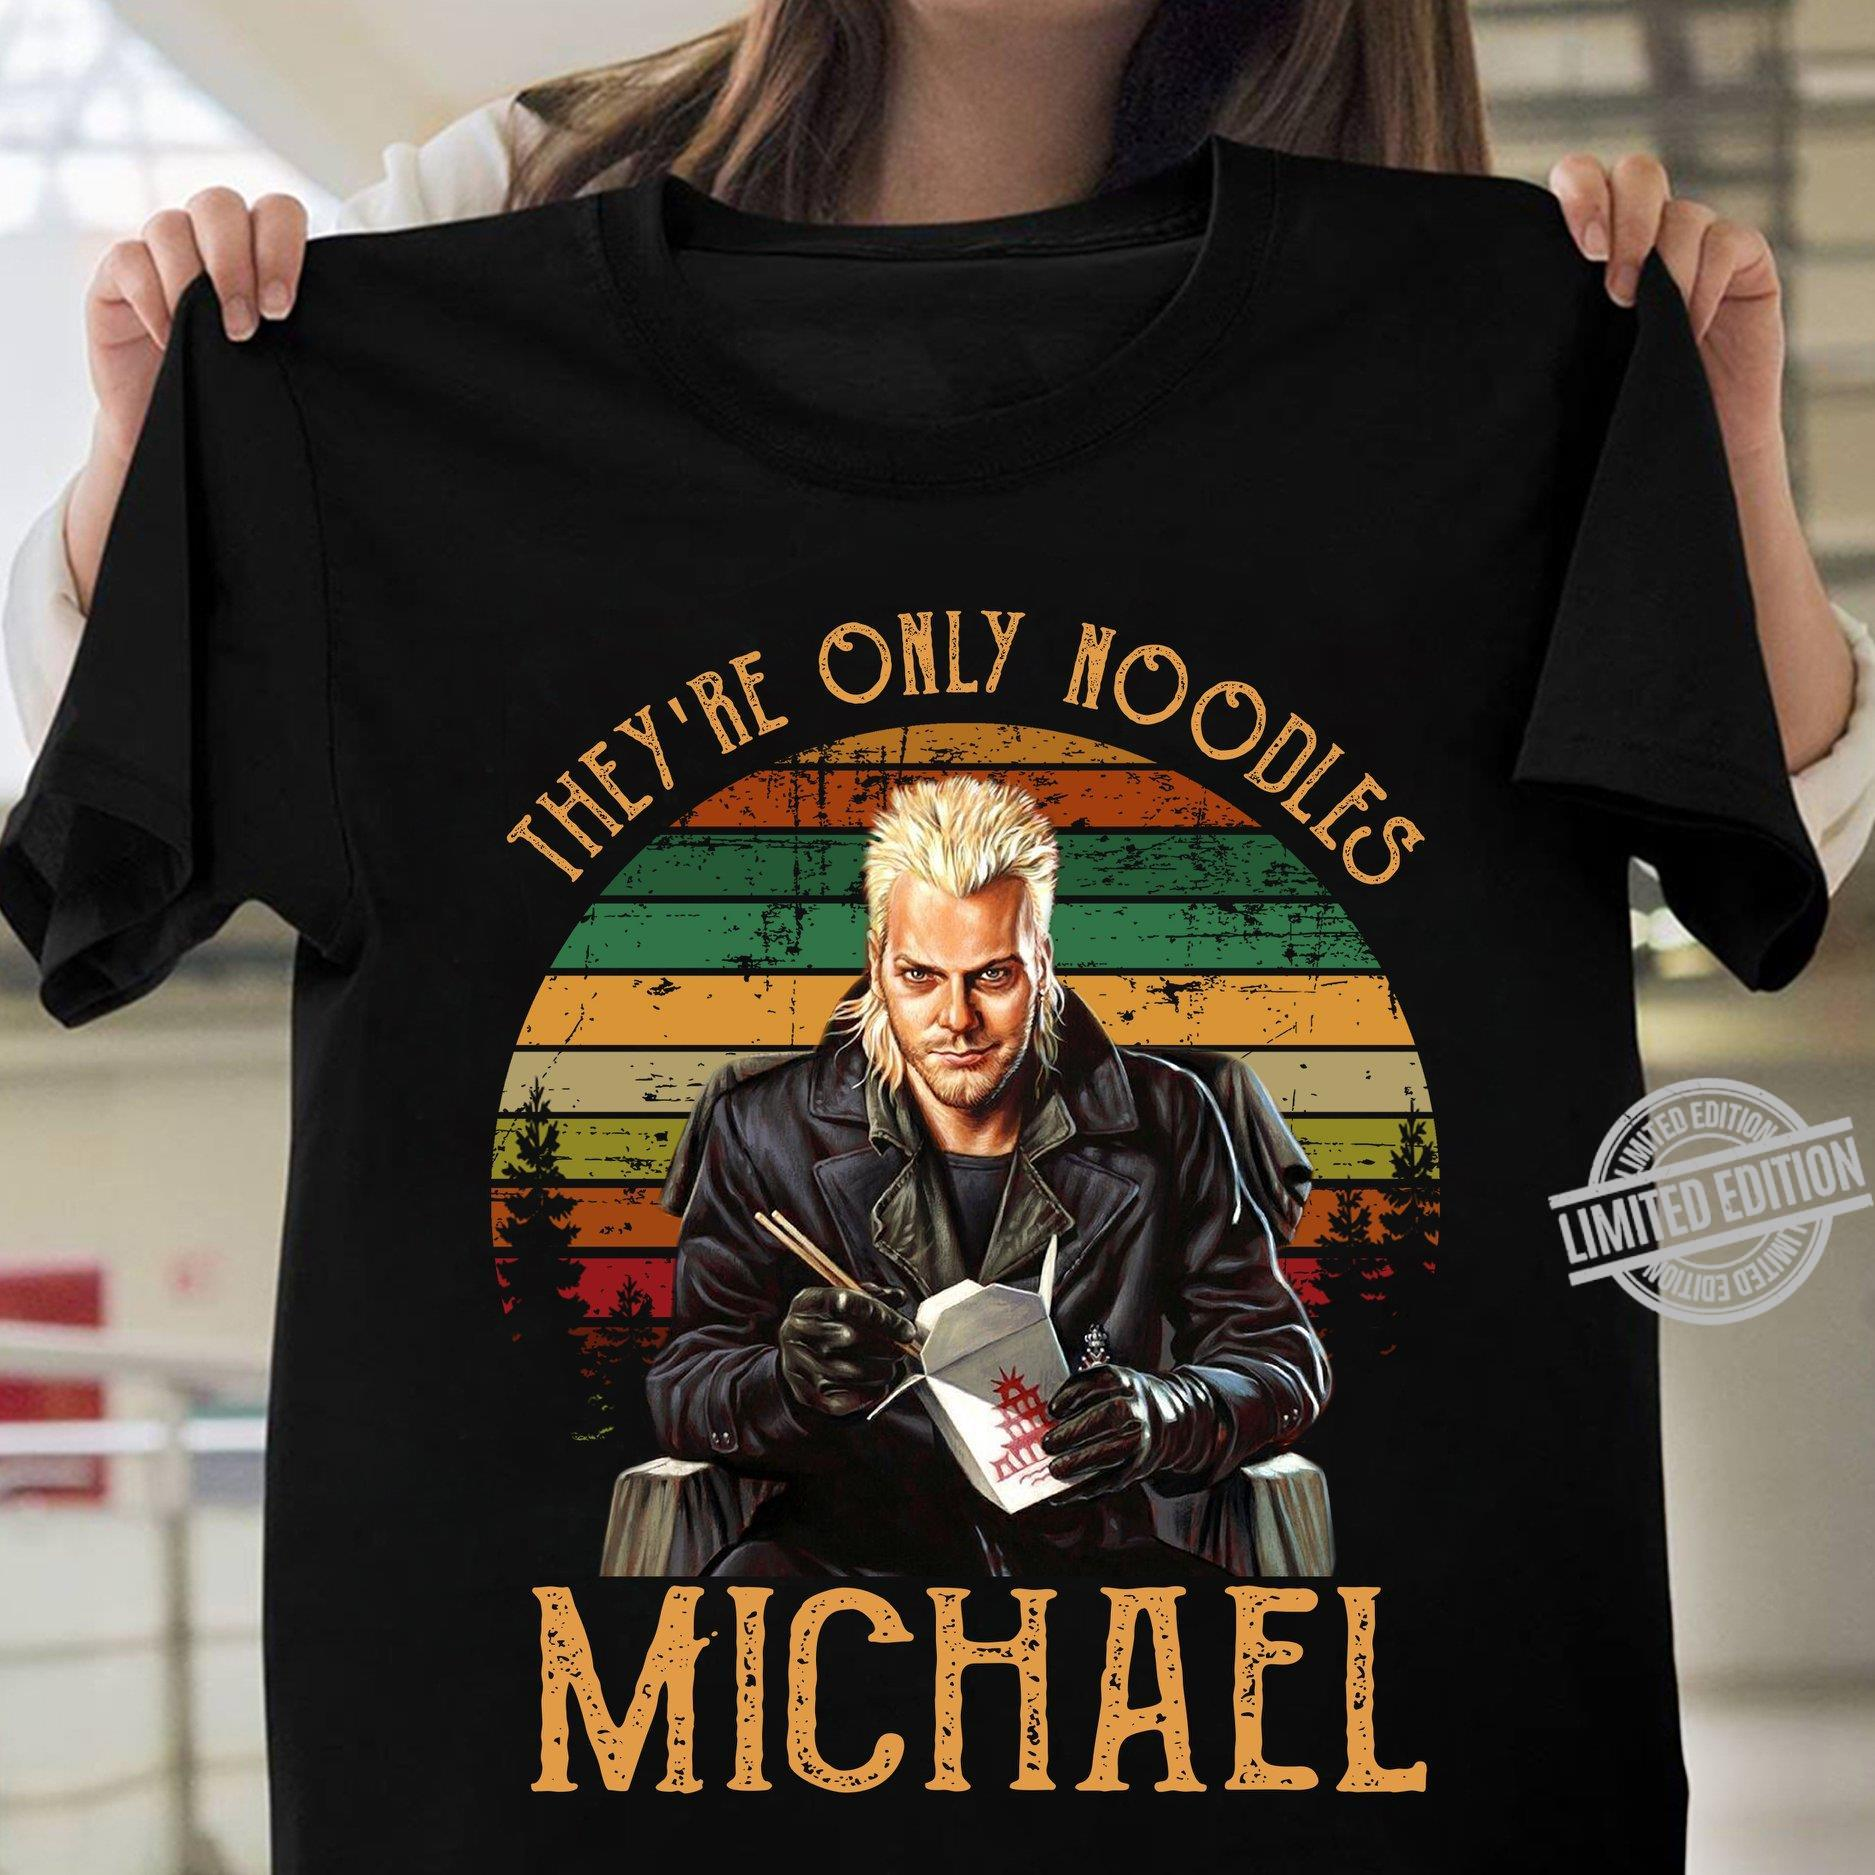 They're Only Noodles Michael Shirt